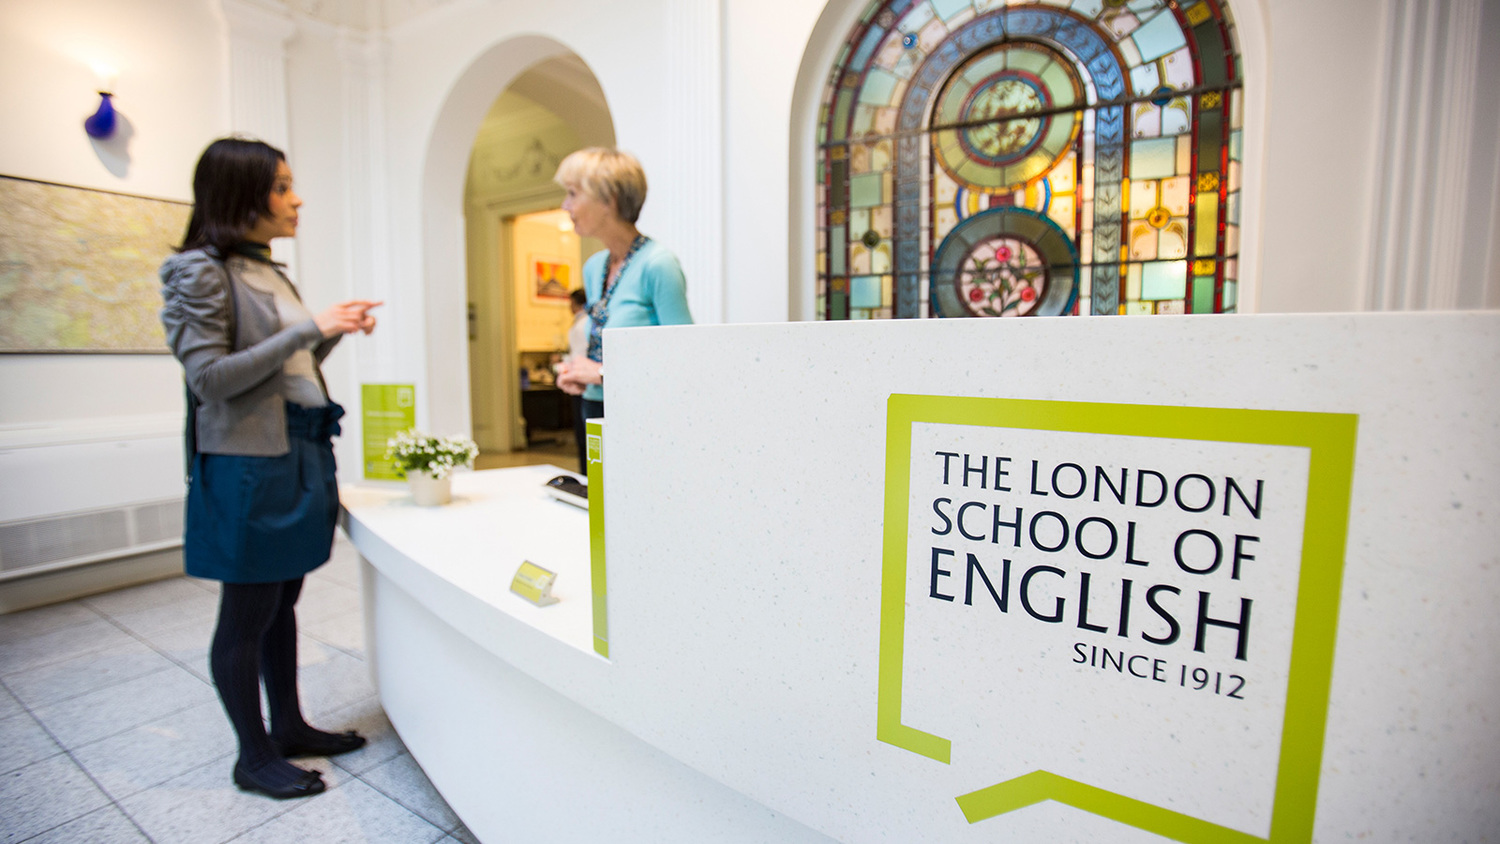 "<span style=""font-weight: bold;"">LONDON SCHOOL OF ENGLISH</span><br>"